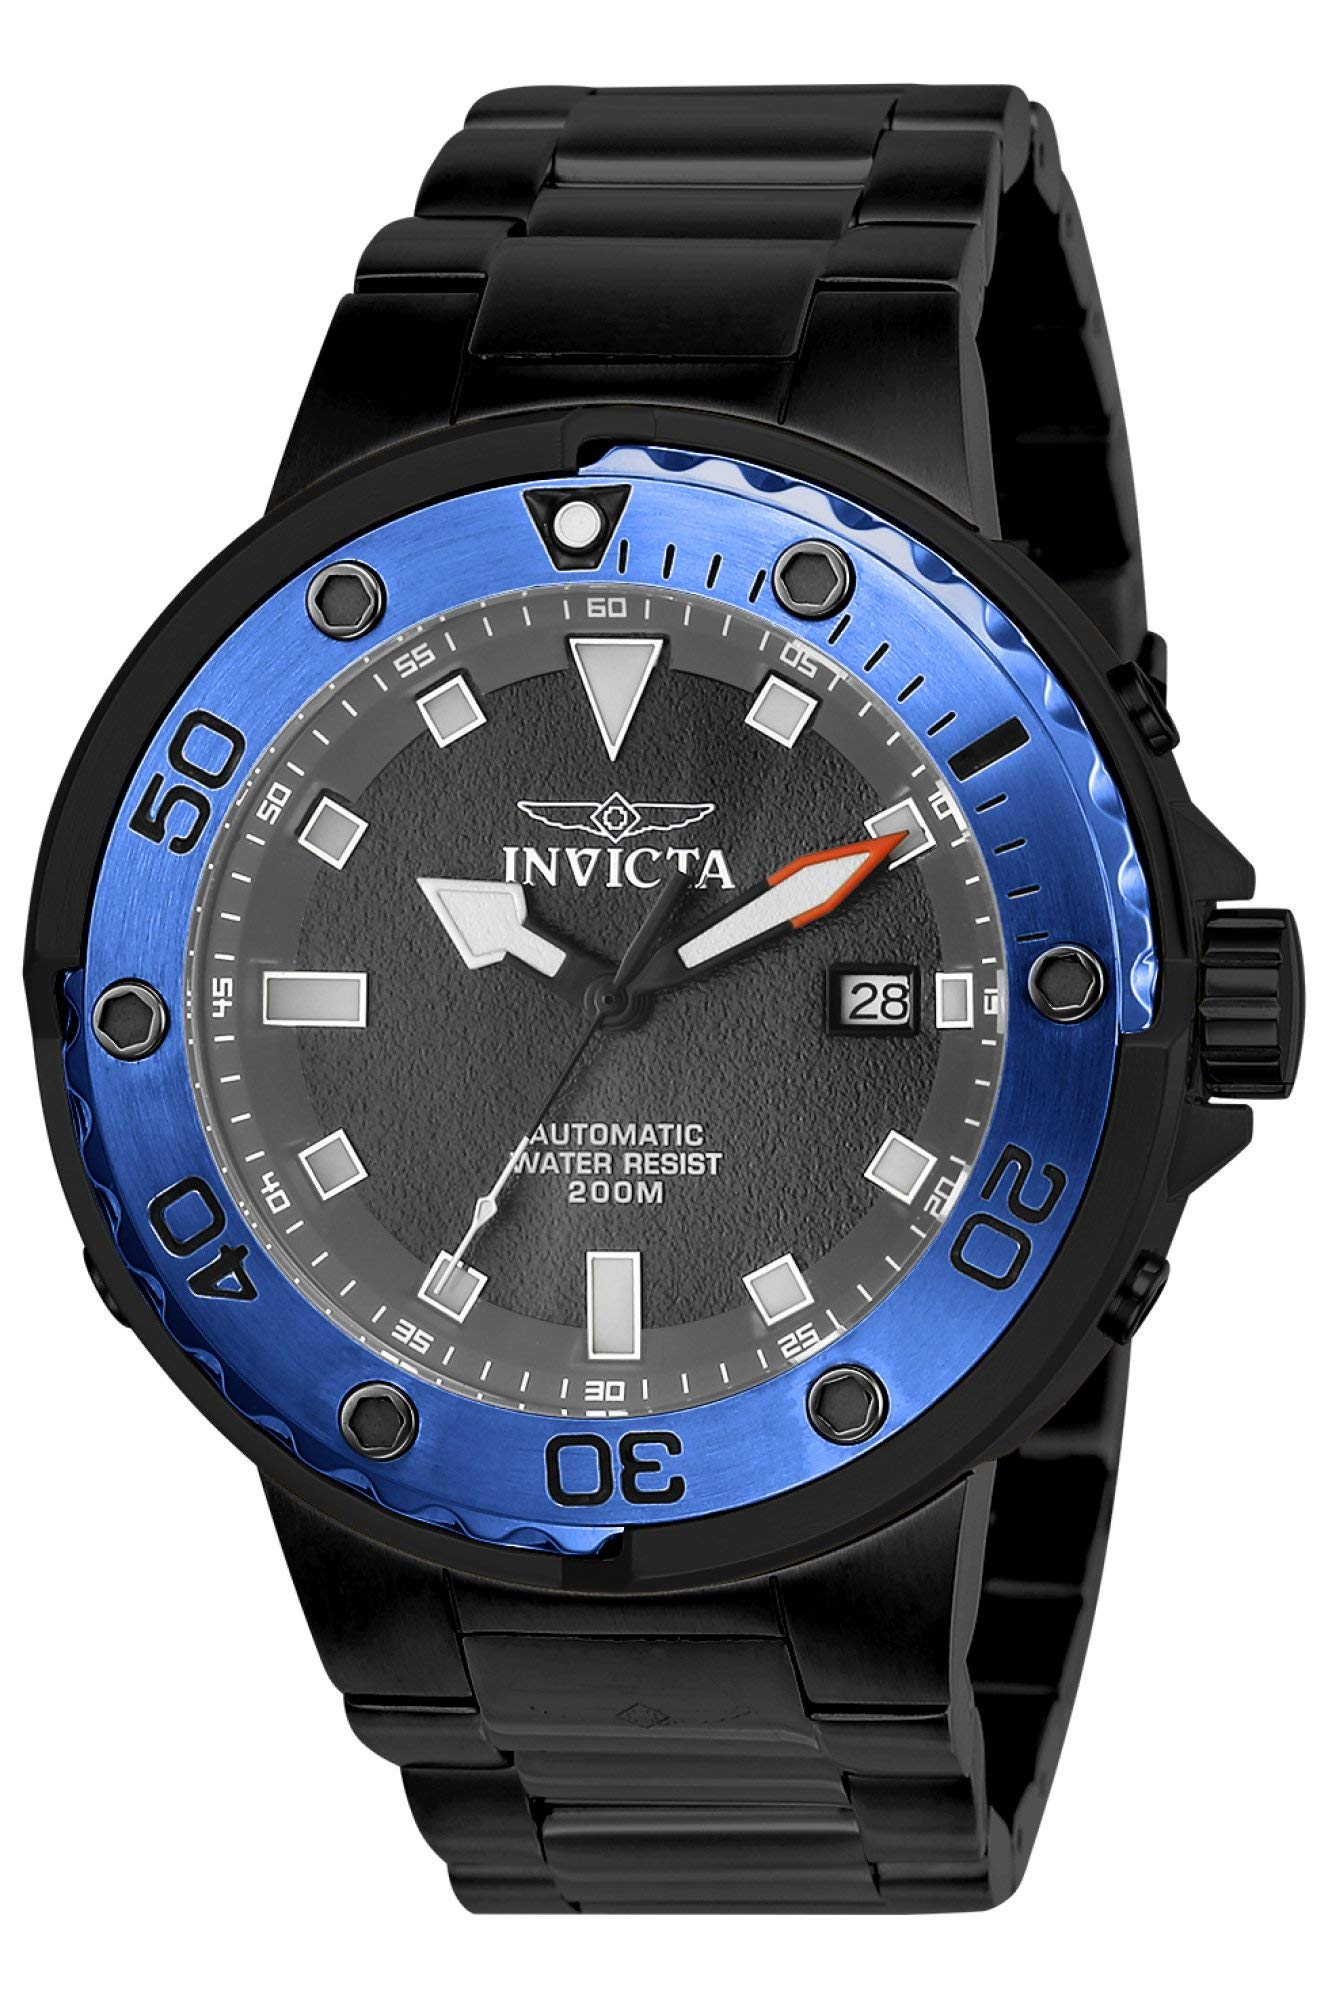 Invicta Men's Pro Diver 49mm Stainless Steel Automatic Watch, Black (Model: 24466)